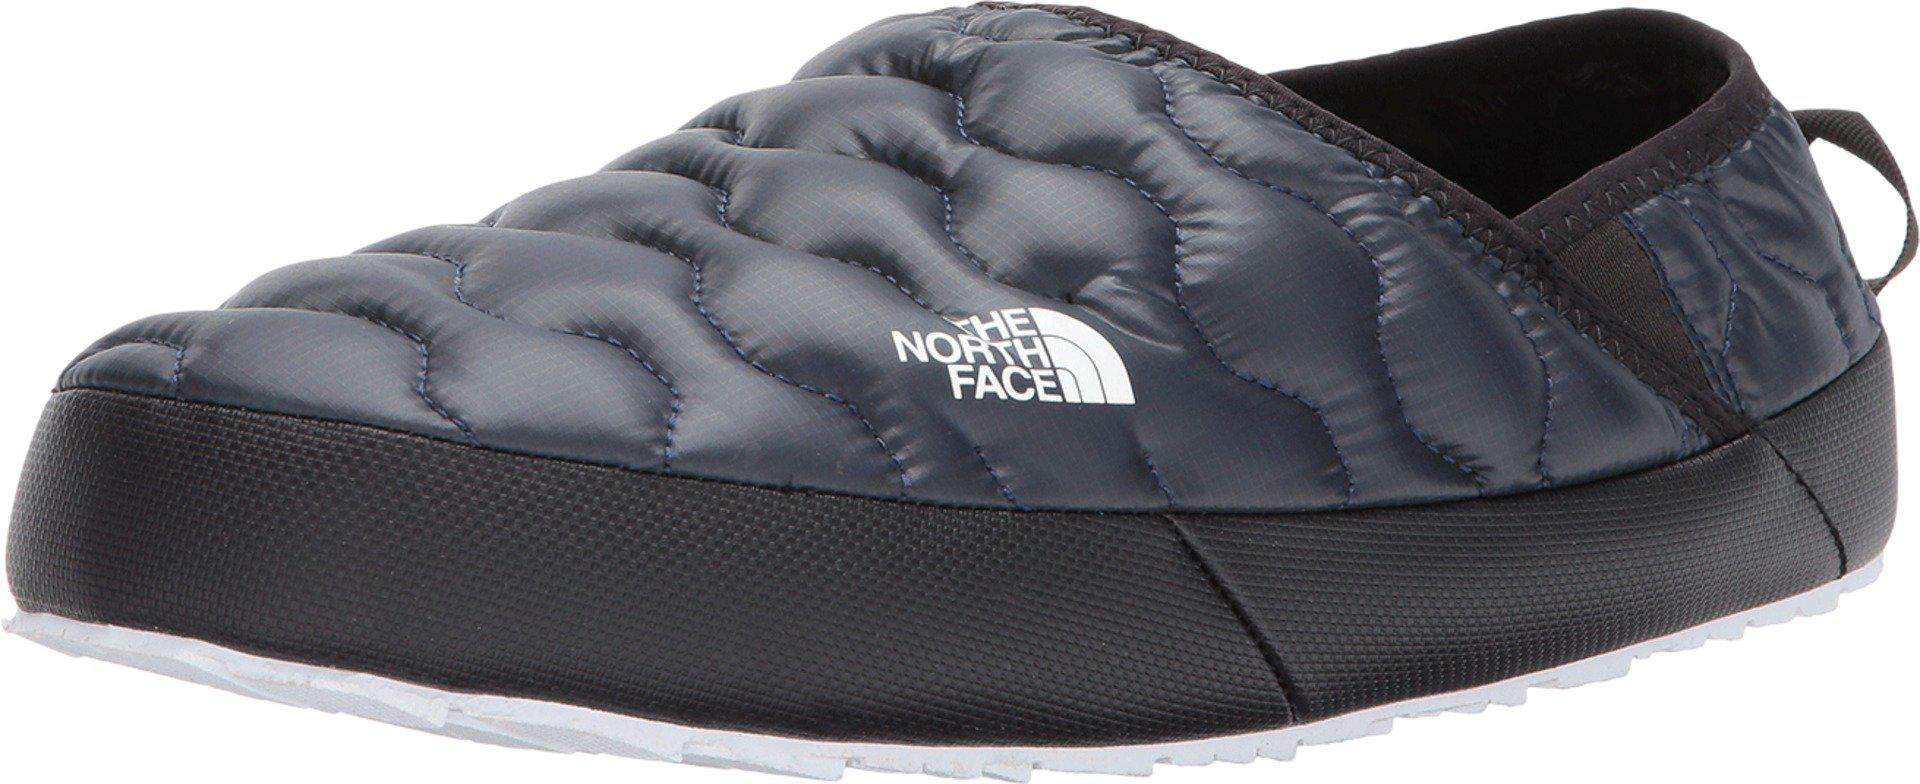 4511ce77f73 Lyst - The North Face Thermoball Traction Mule Iv in Blue for Men